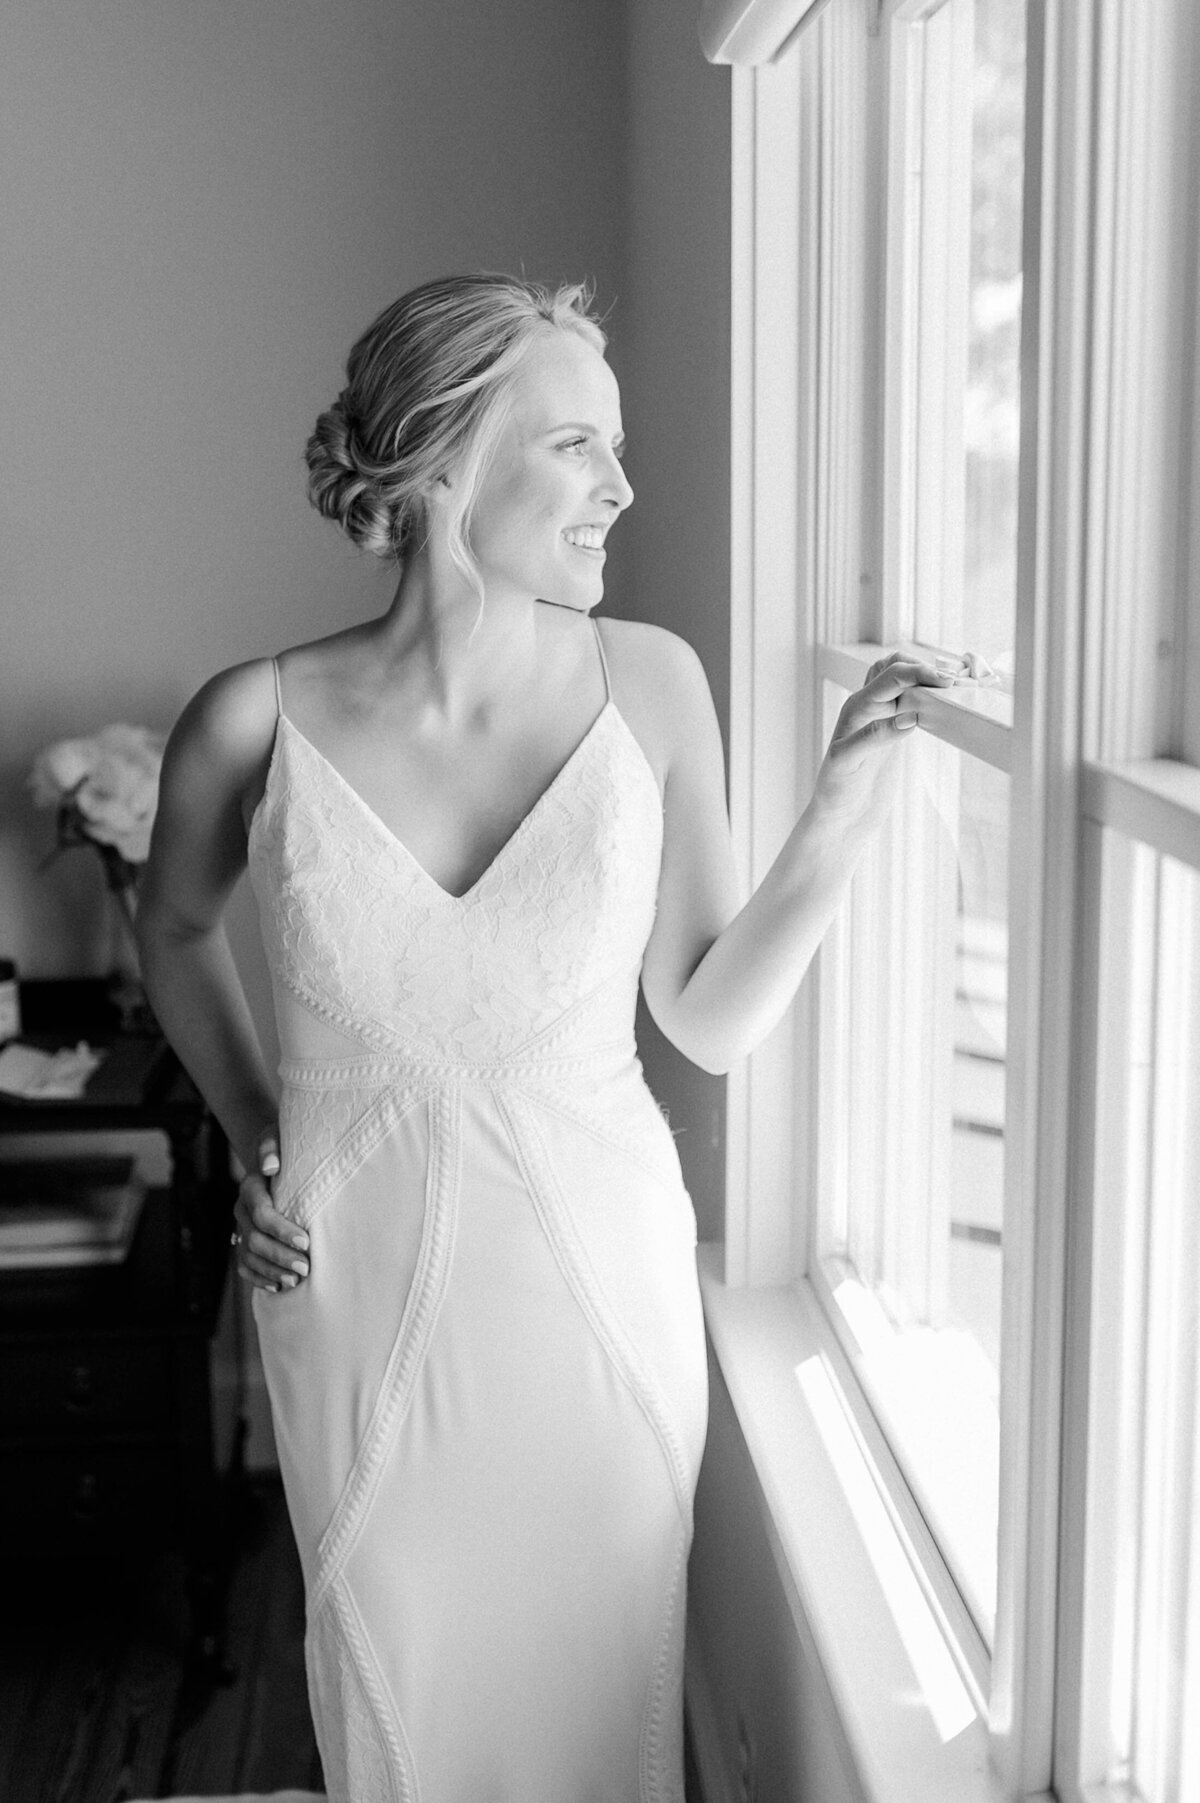 Jennifer Bosak Photography - DC Area Wedding Photography - DC, Virginia, Maryland - Kaitlyn + Jordan - Stone Tower Winery - 26